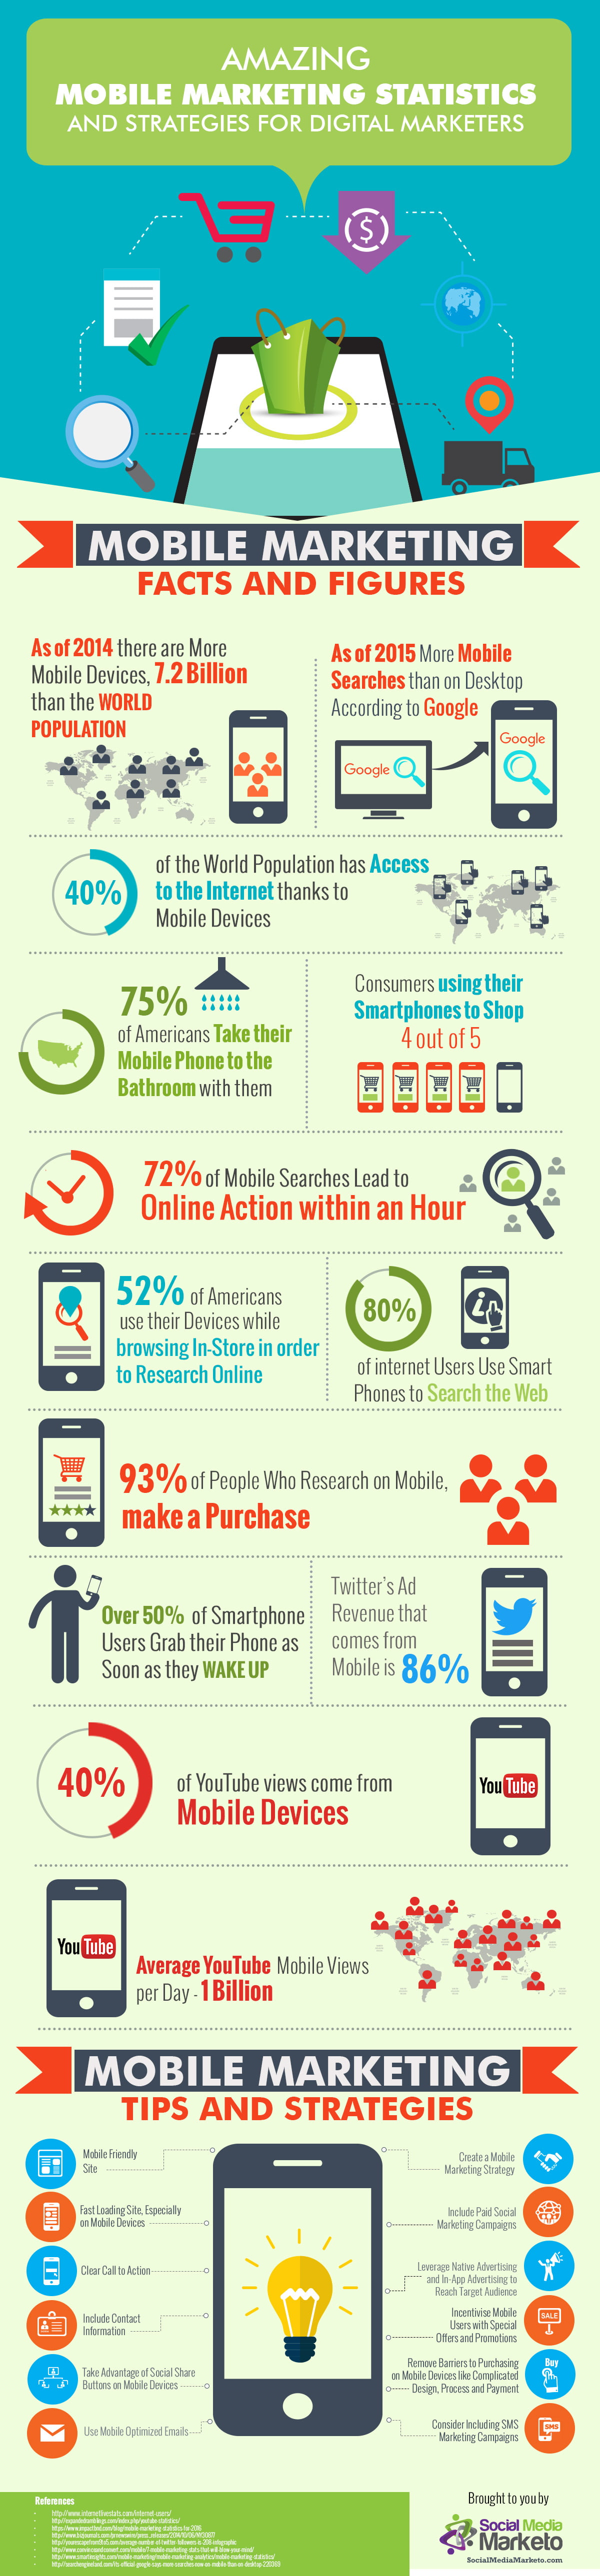 Amazing Mobile Marketing Statistics Infographic